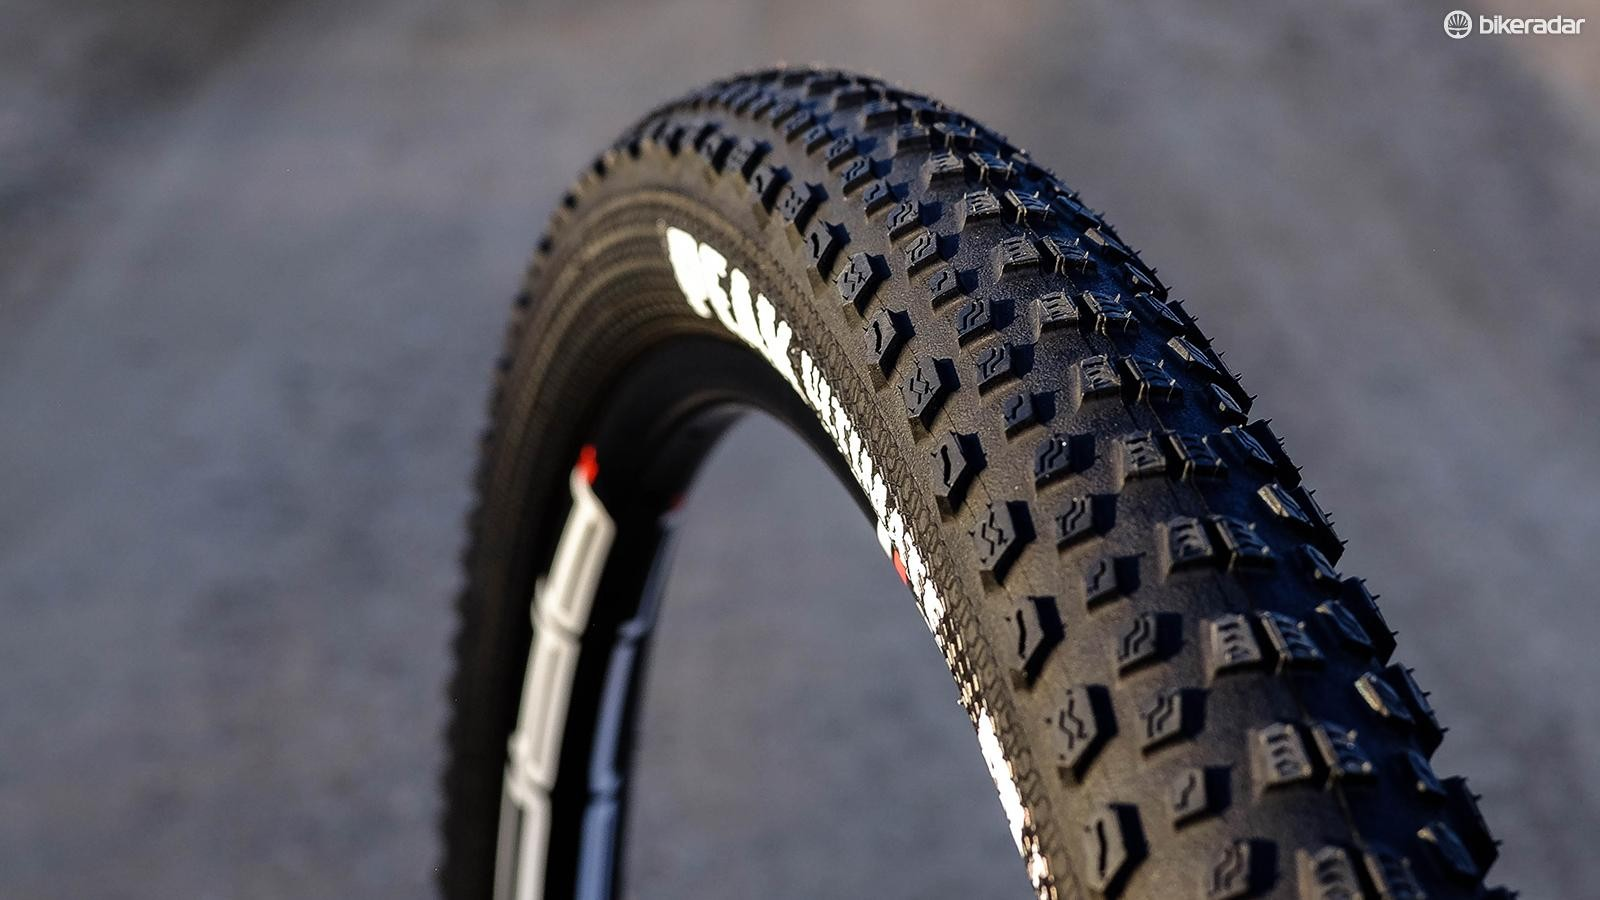 The Peak cross-country tire